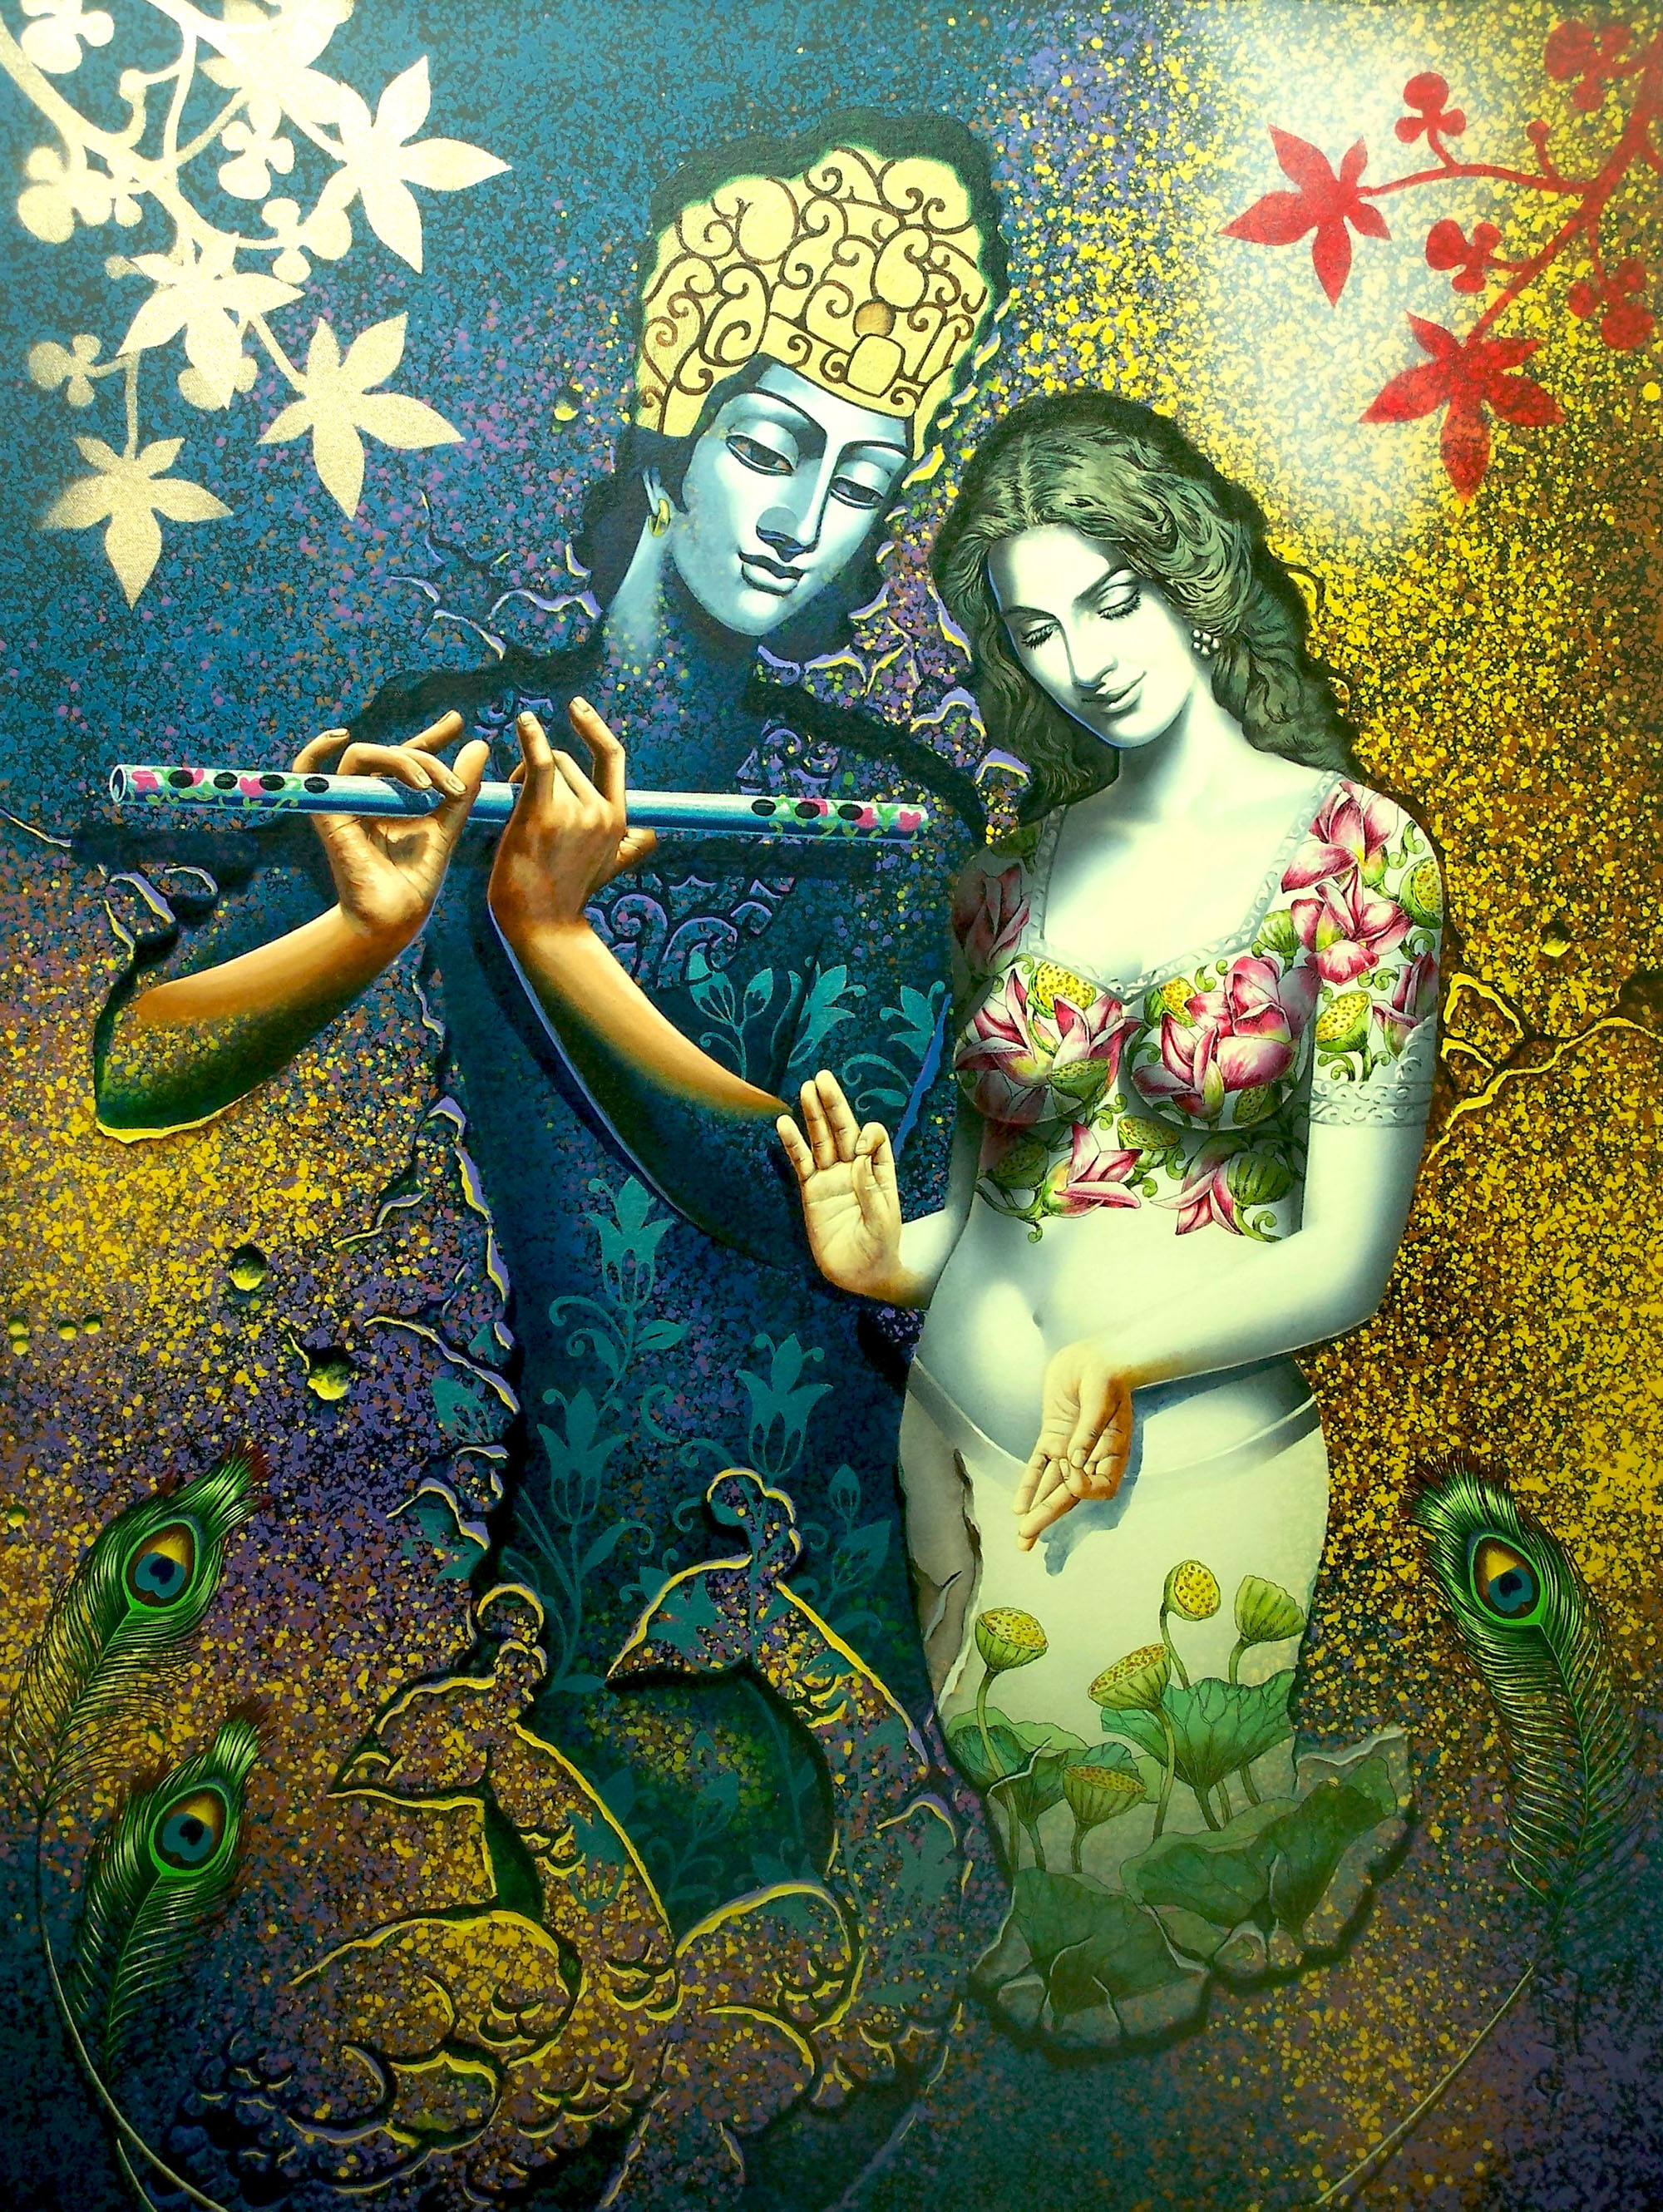 The Immortal love by artist Prashanta Nayak This artwork portray mythology and religious stories that conveys a pure feeling of love